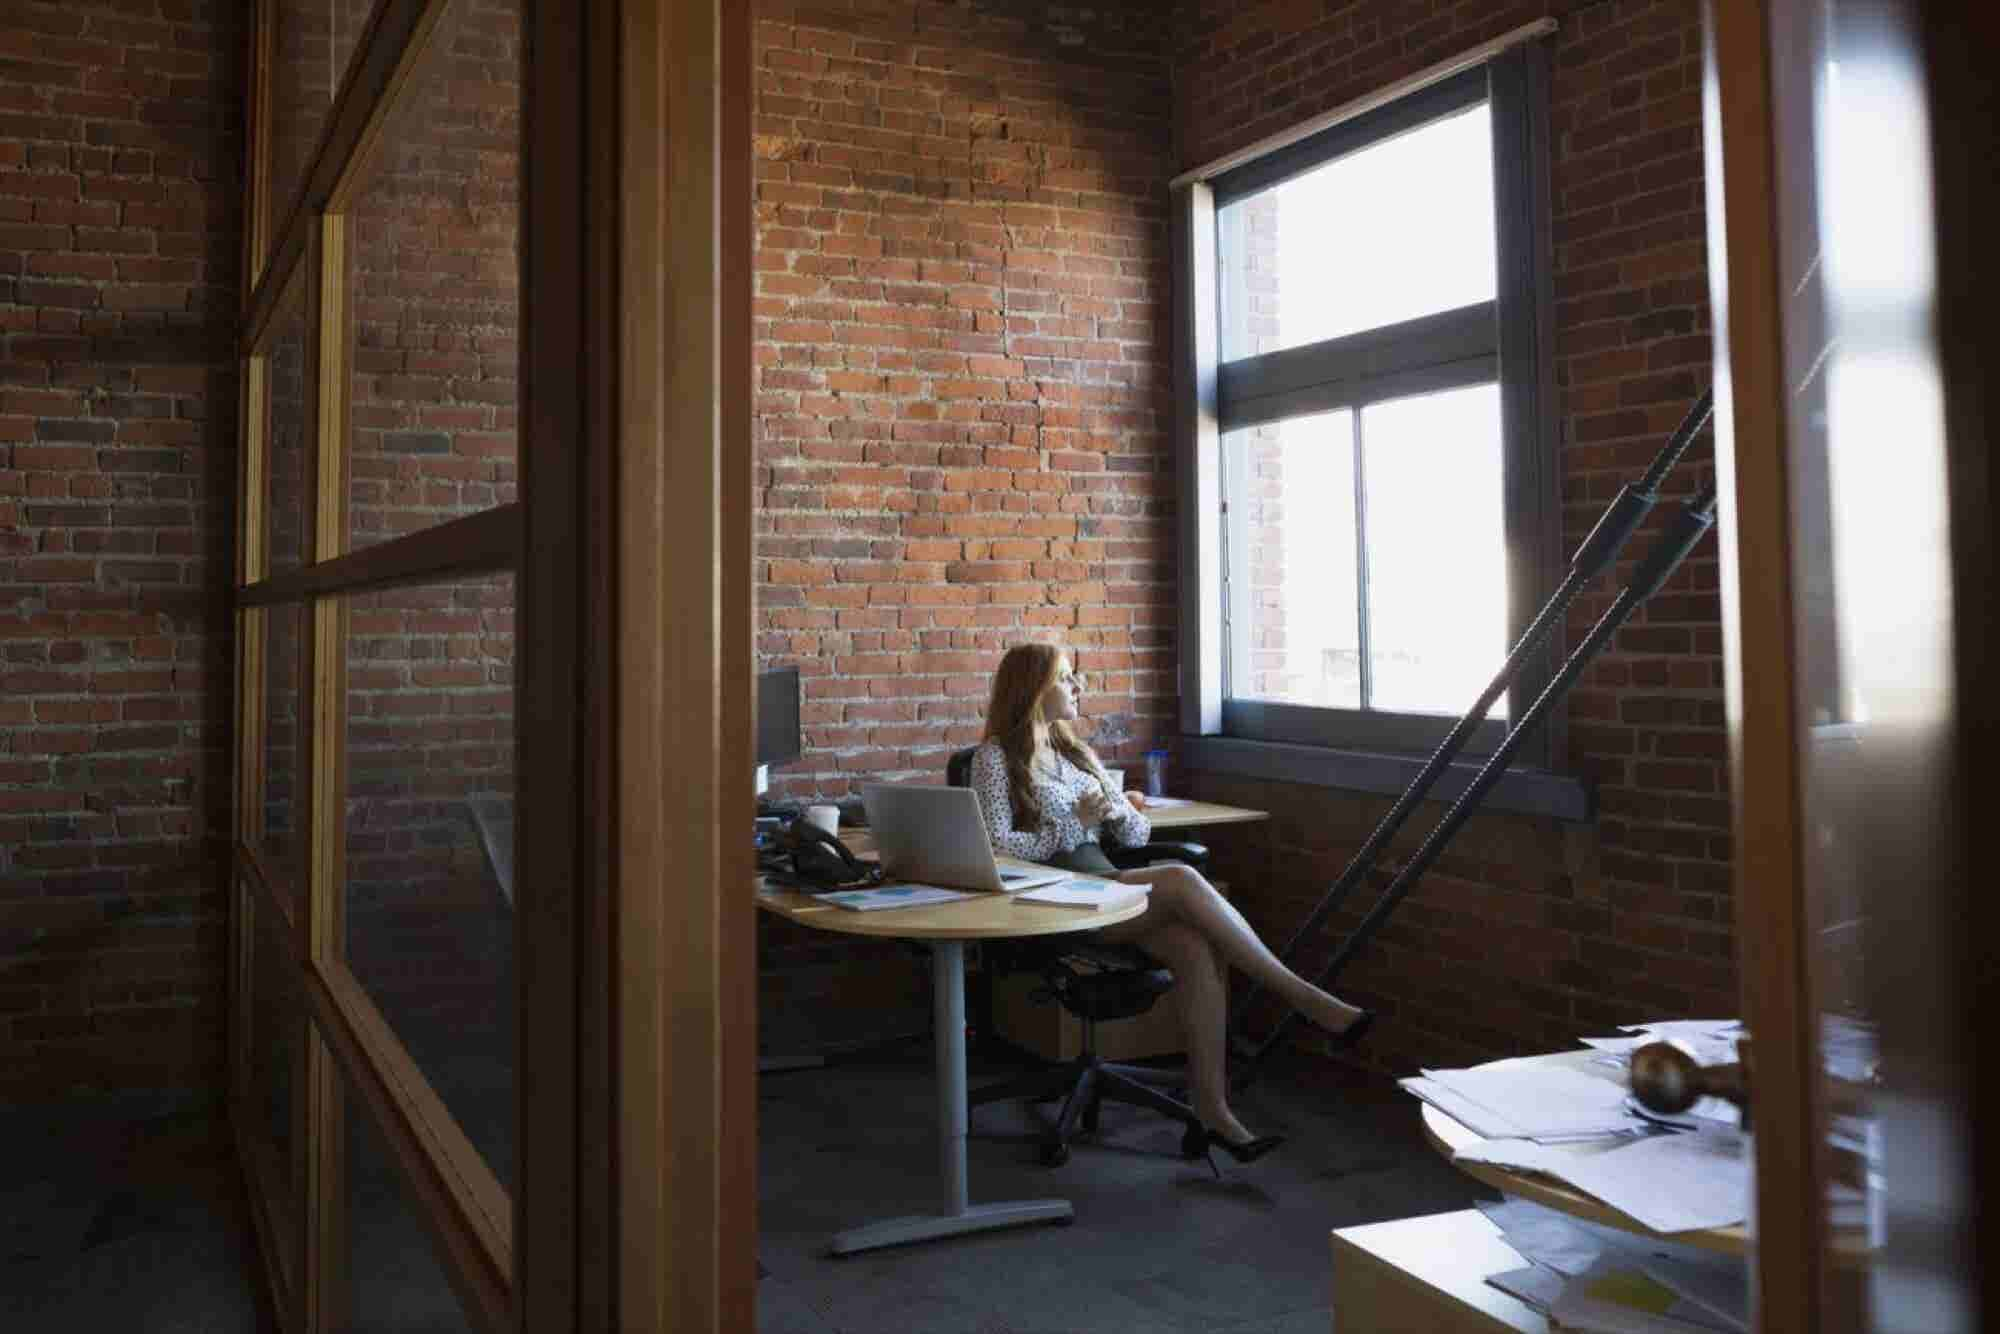 Startup Failure Is When Your Leadership Will Be Tested Most